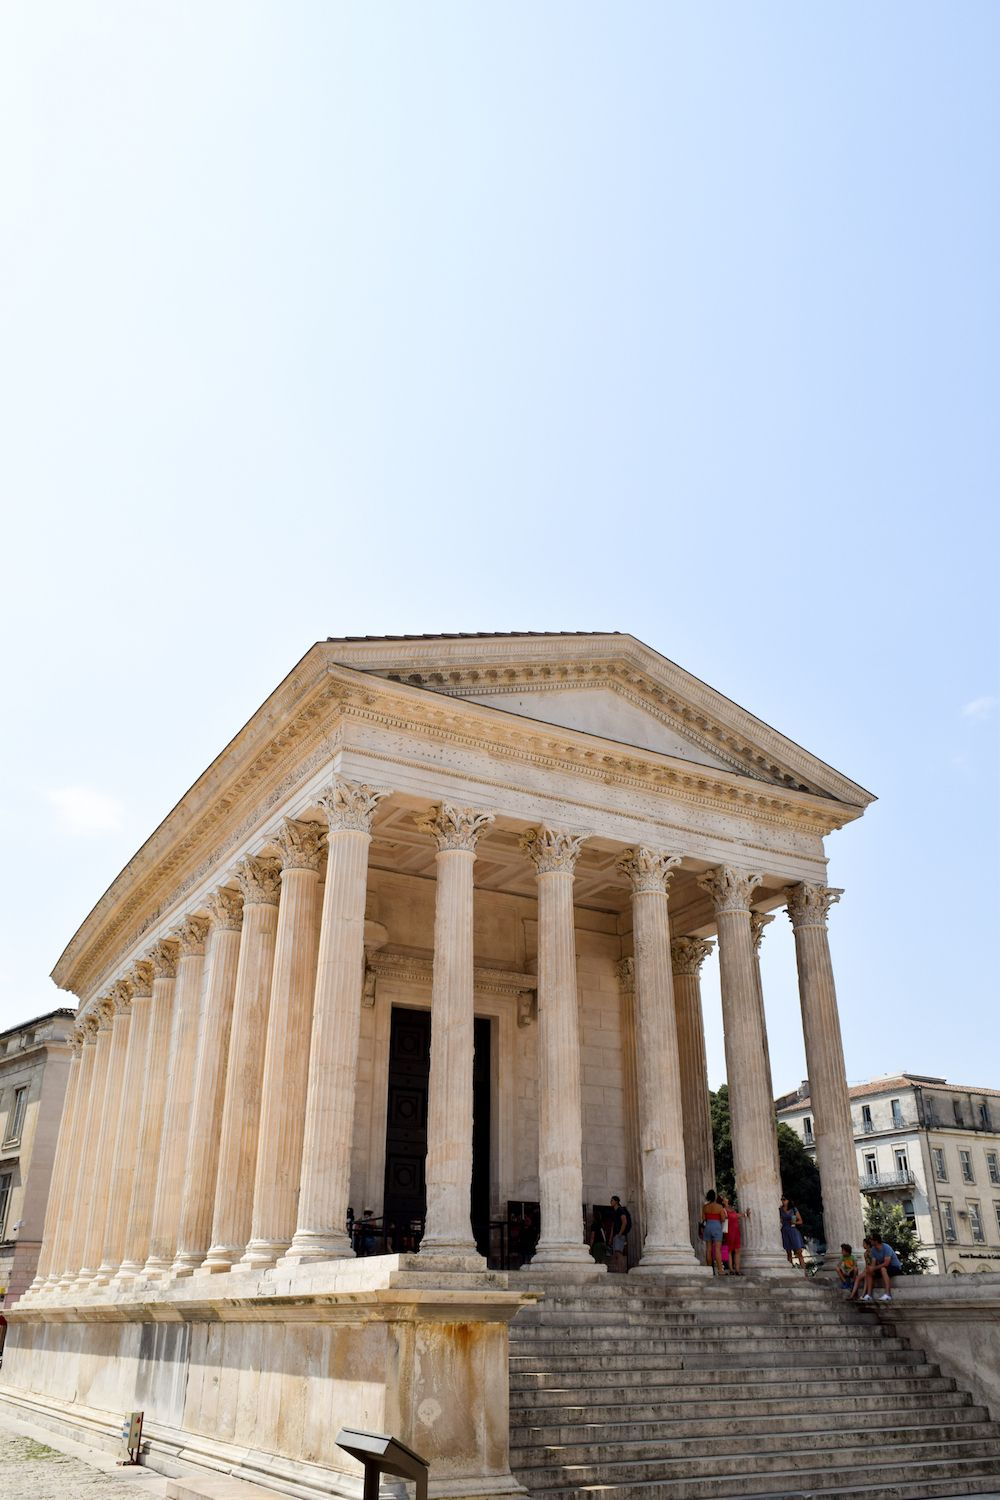 Former Roman Empire in France: Maison Carrée, Nîmes, France